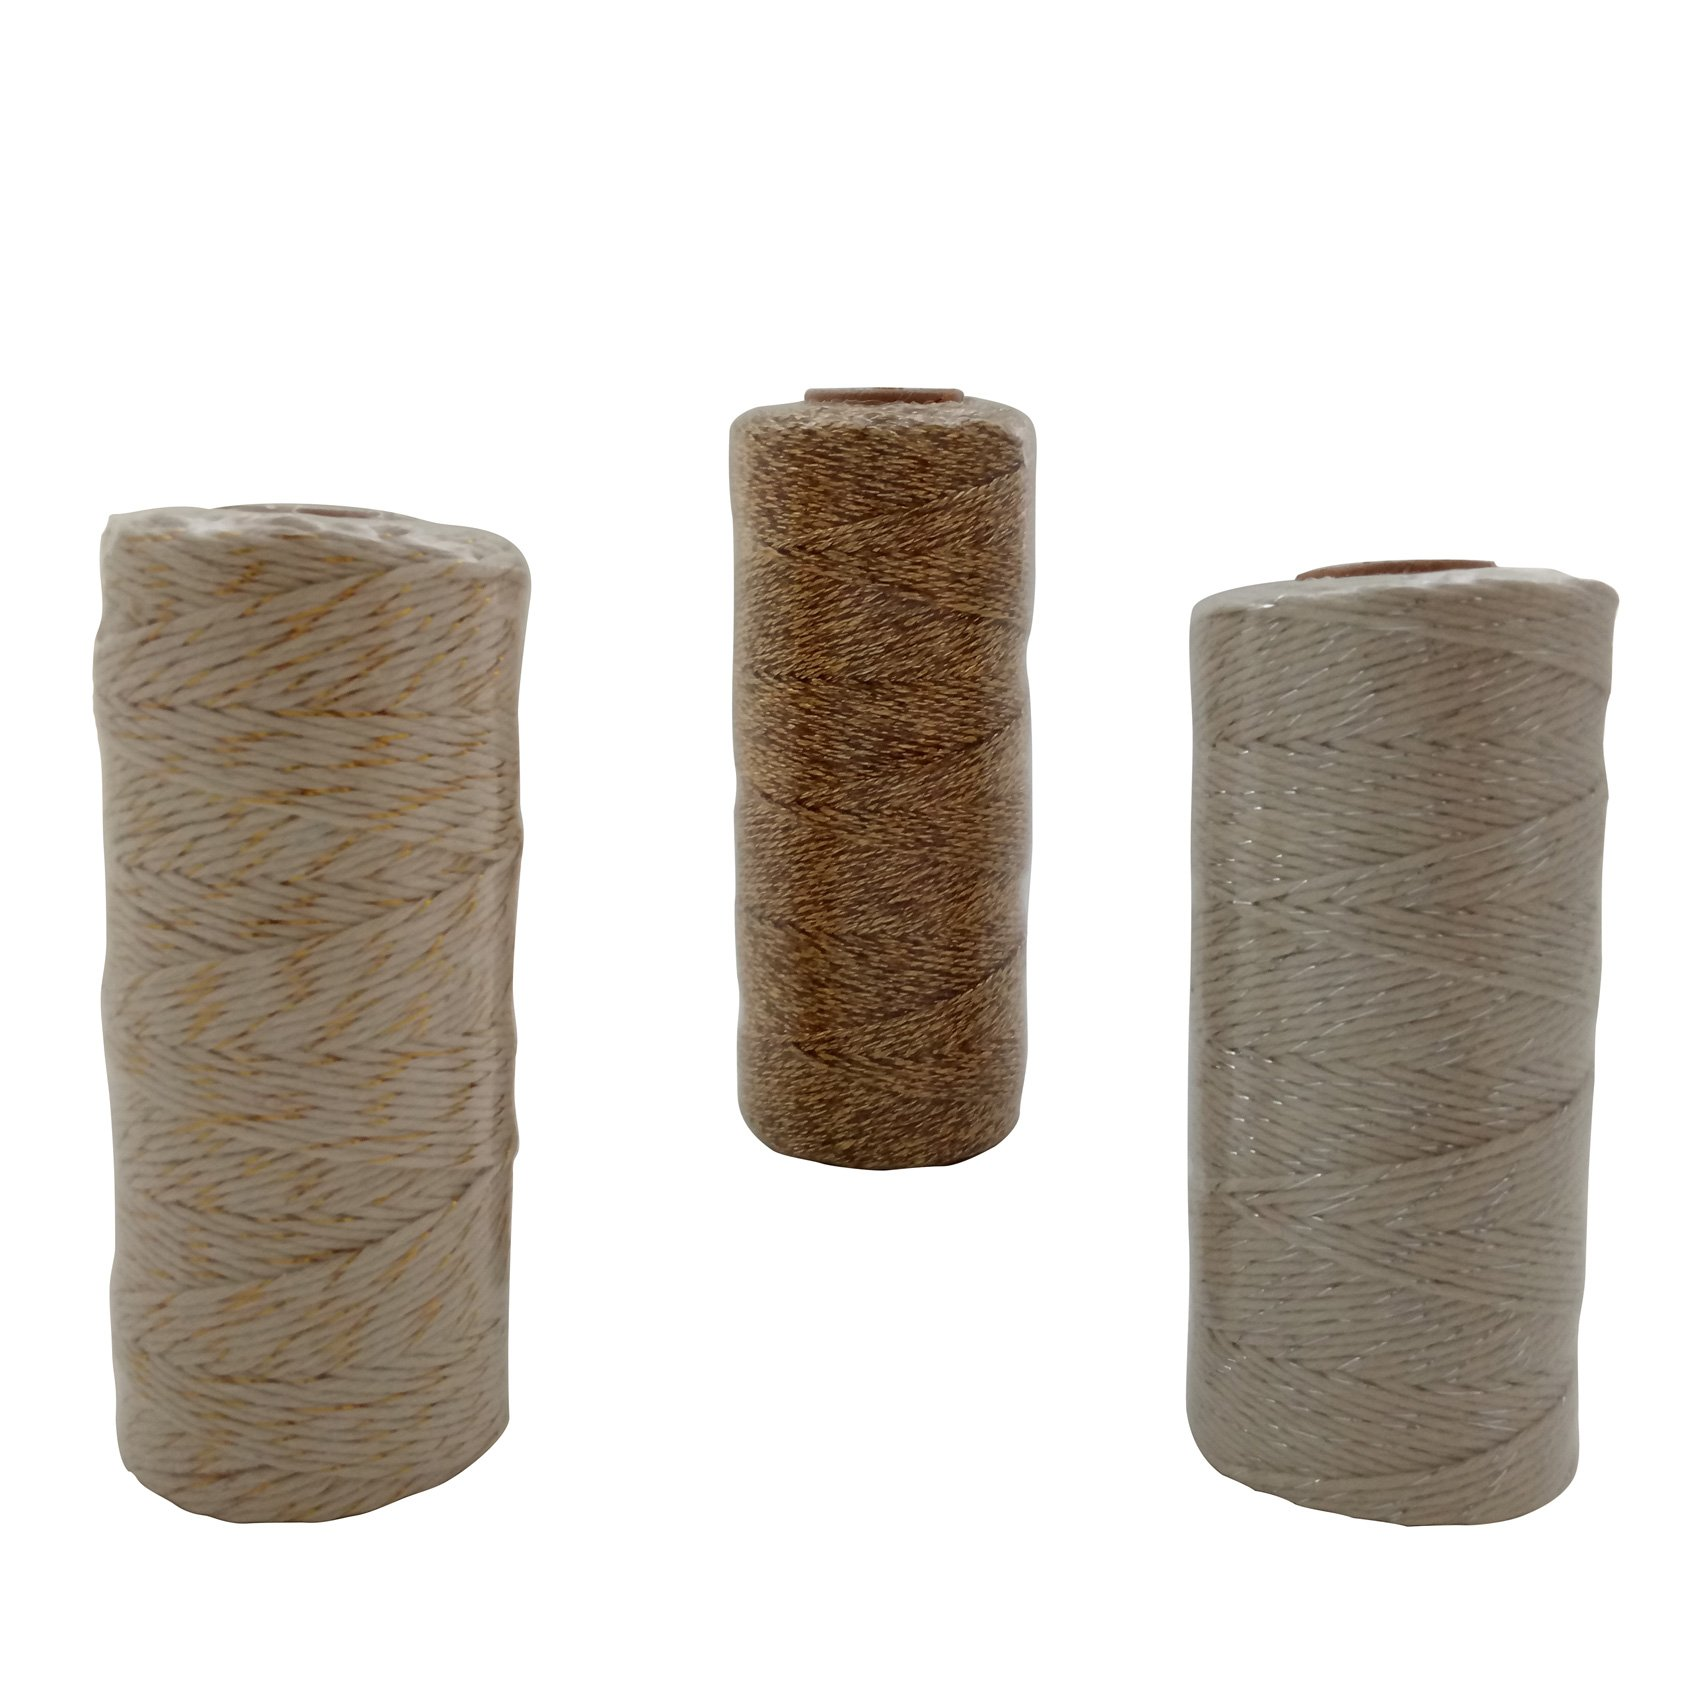 100m IPALMAY 3PCS Cotton Bakers Twine for Garden Twine or Gift Wrapping, Spool 3-Ply